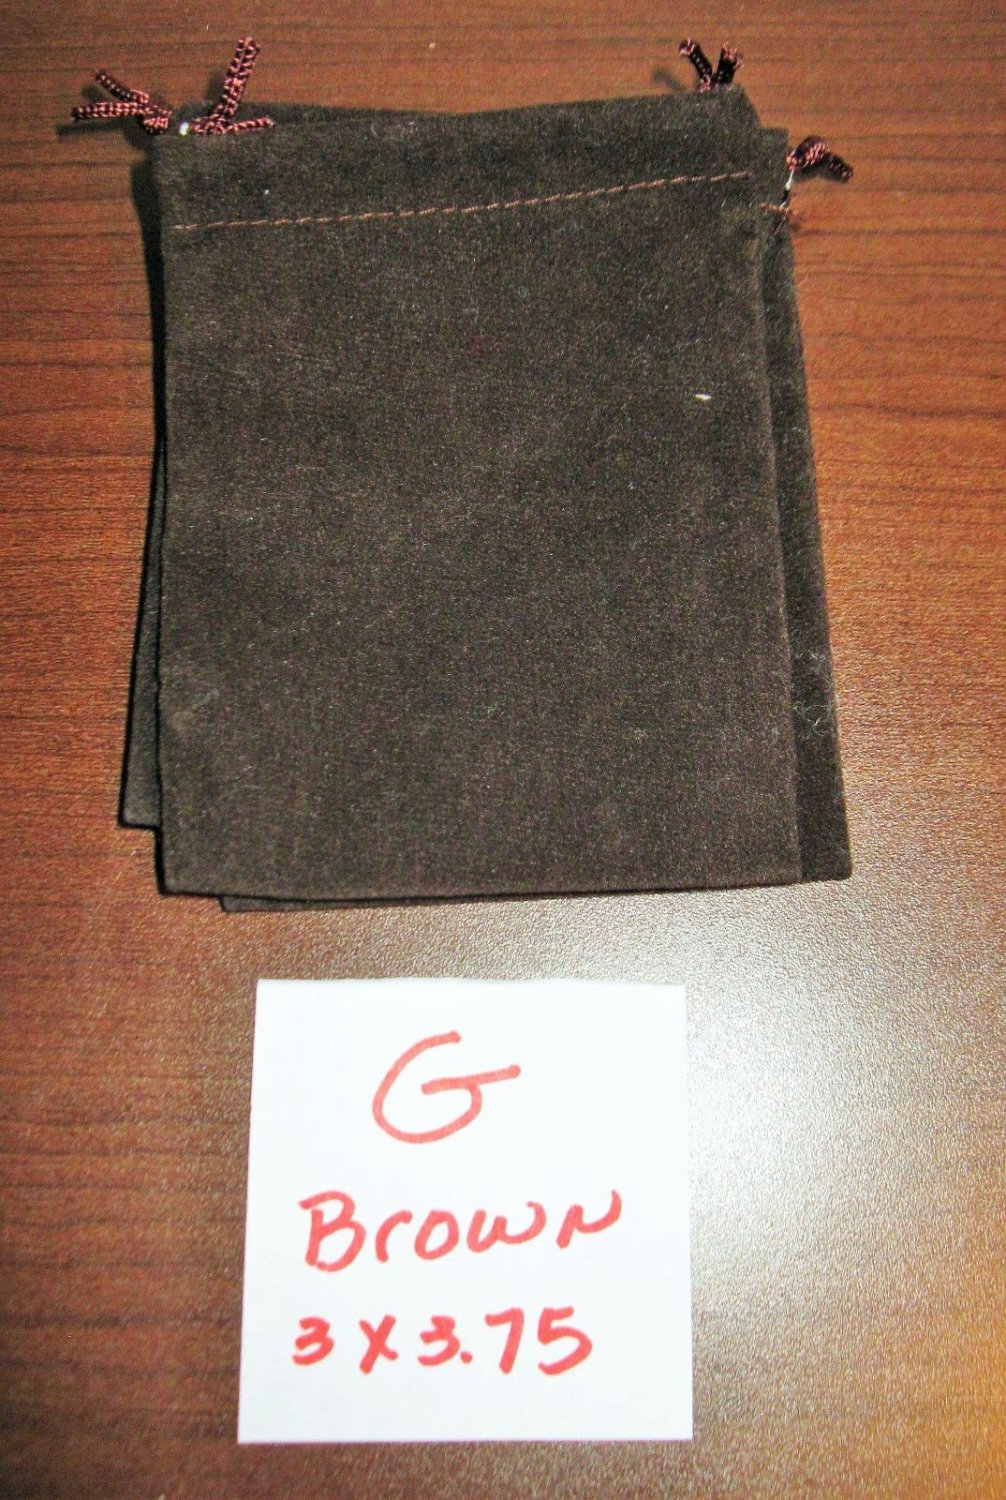 Brown Jewelry Bag Pouch 1 Piece (3 x 3.75 in) New! #D1029G